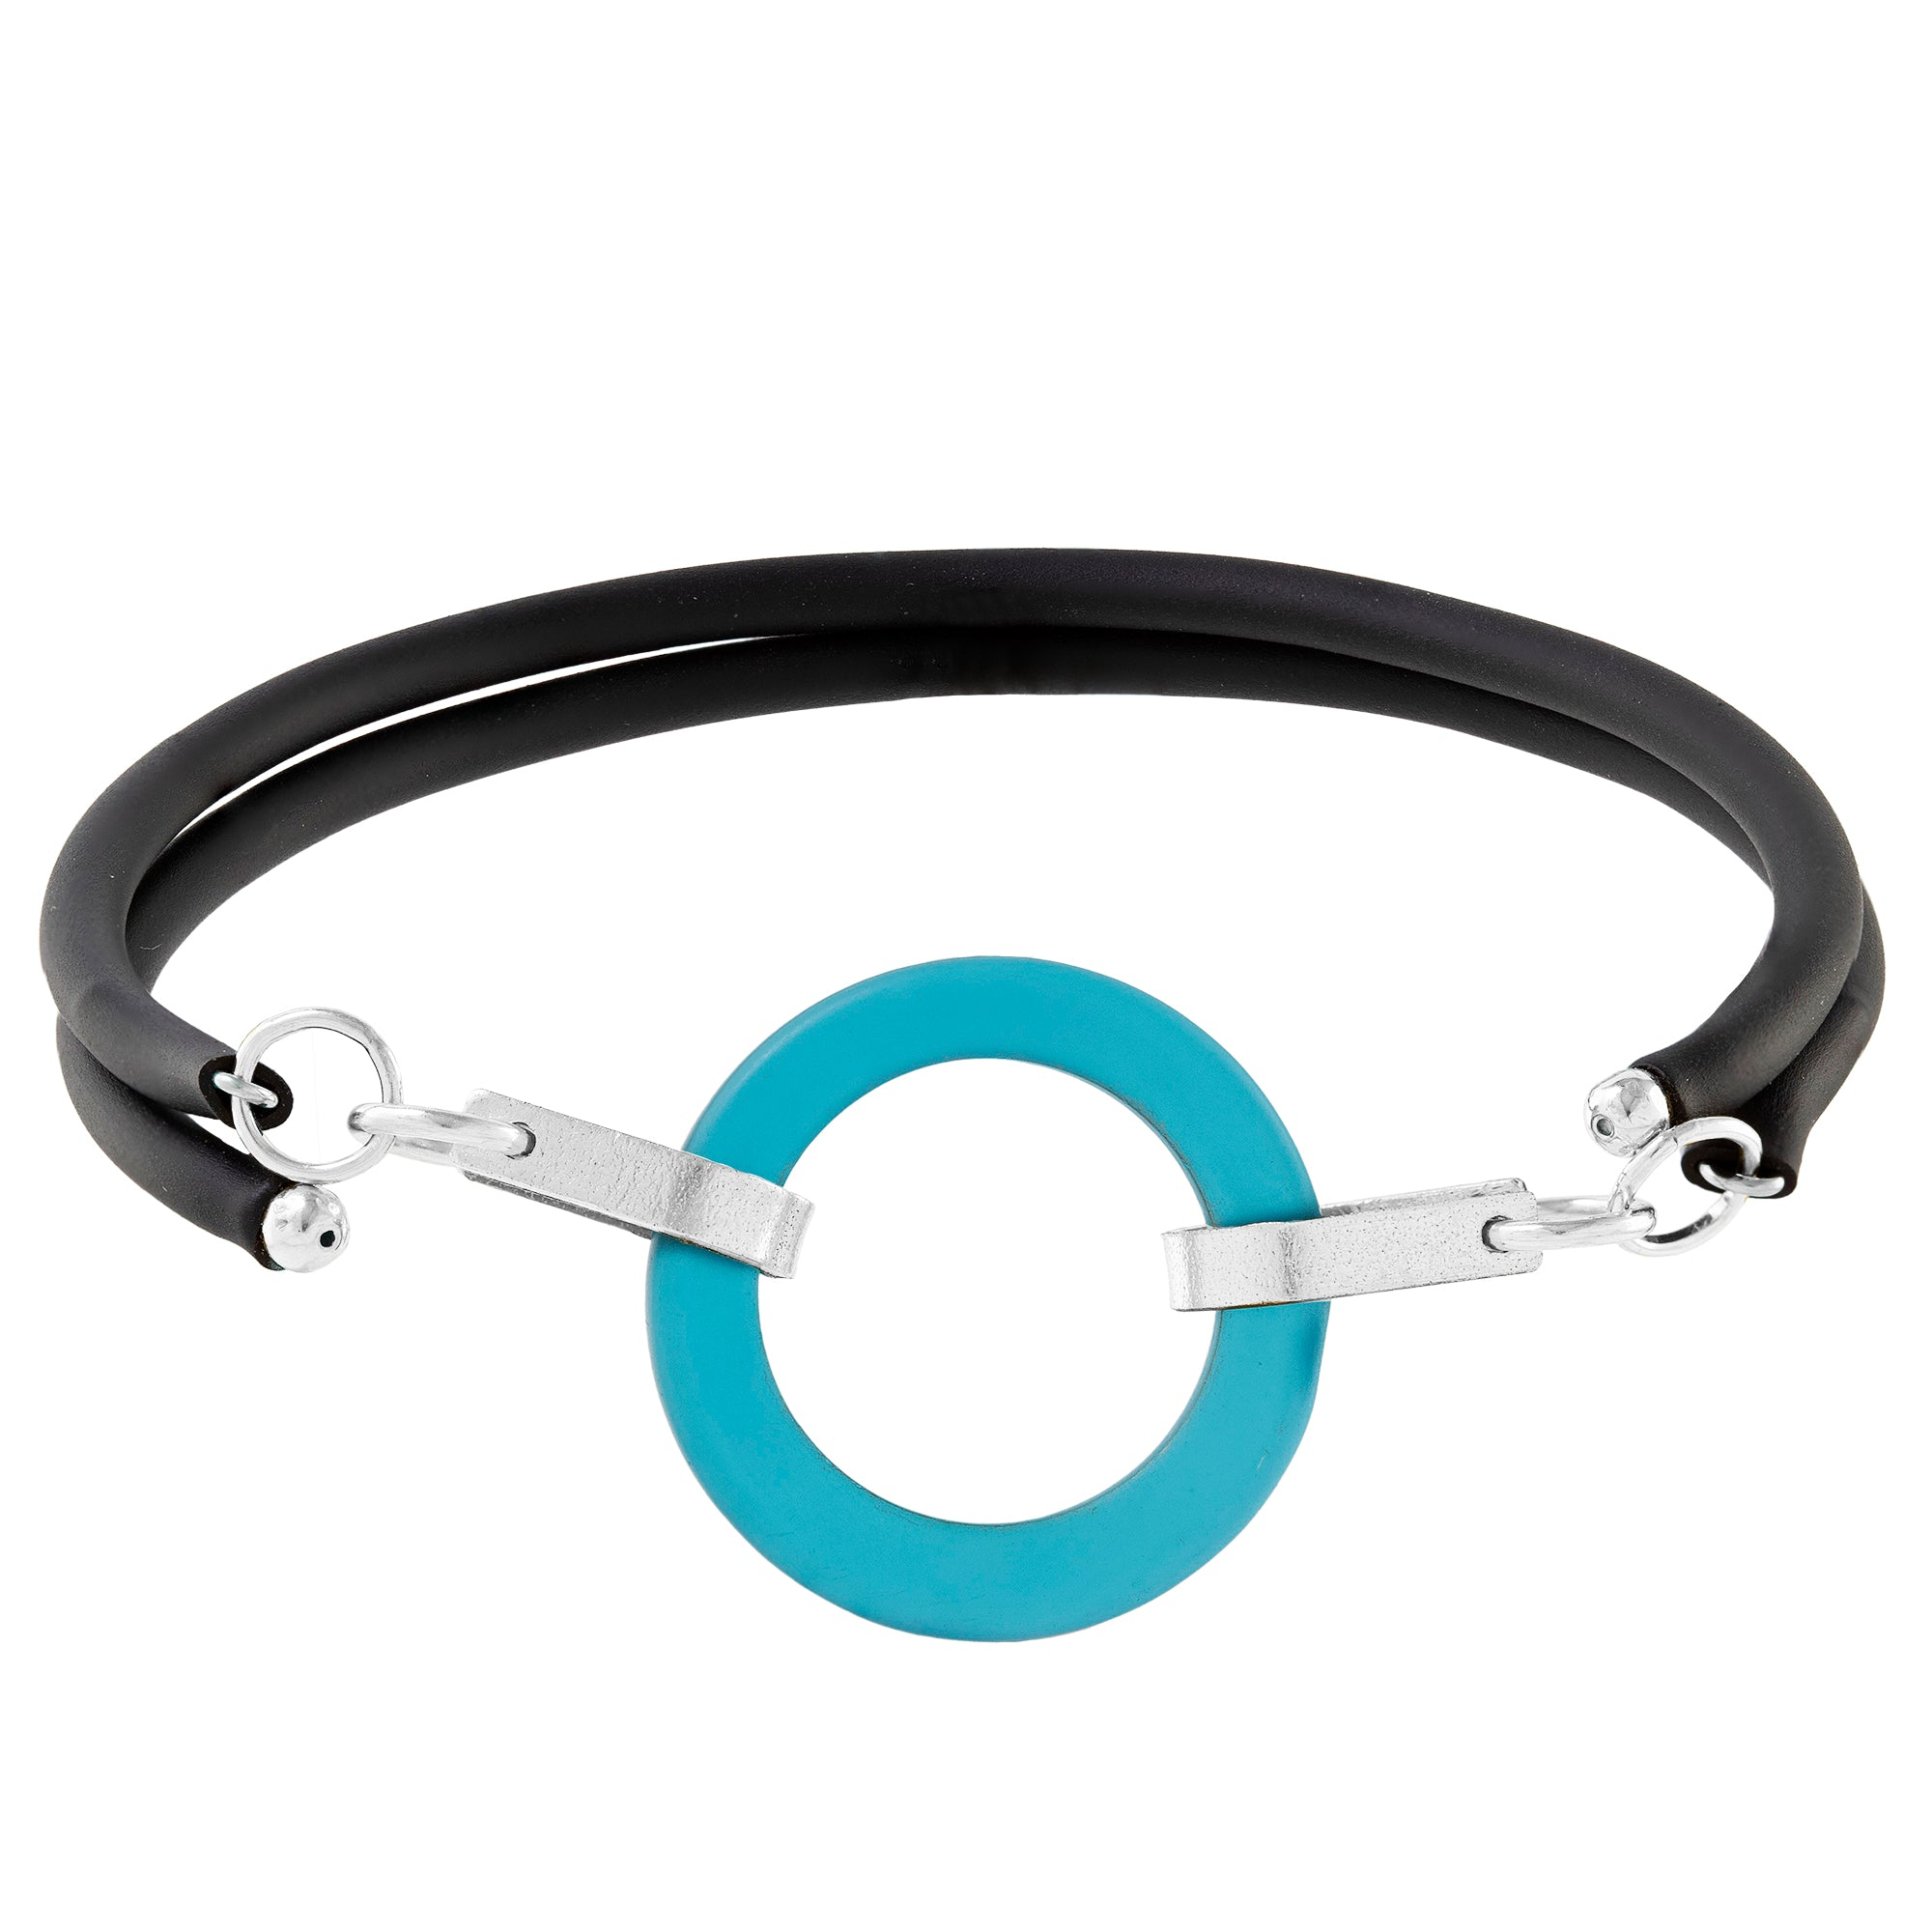 Teal Peacock Blue Recycled Glass Open Circle and Sterling Silver Strap Style Wrap Bracelet